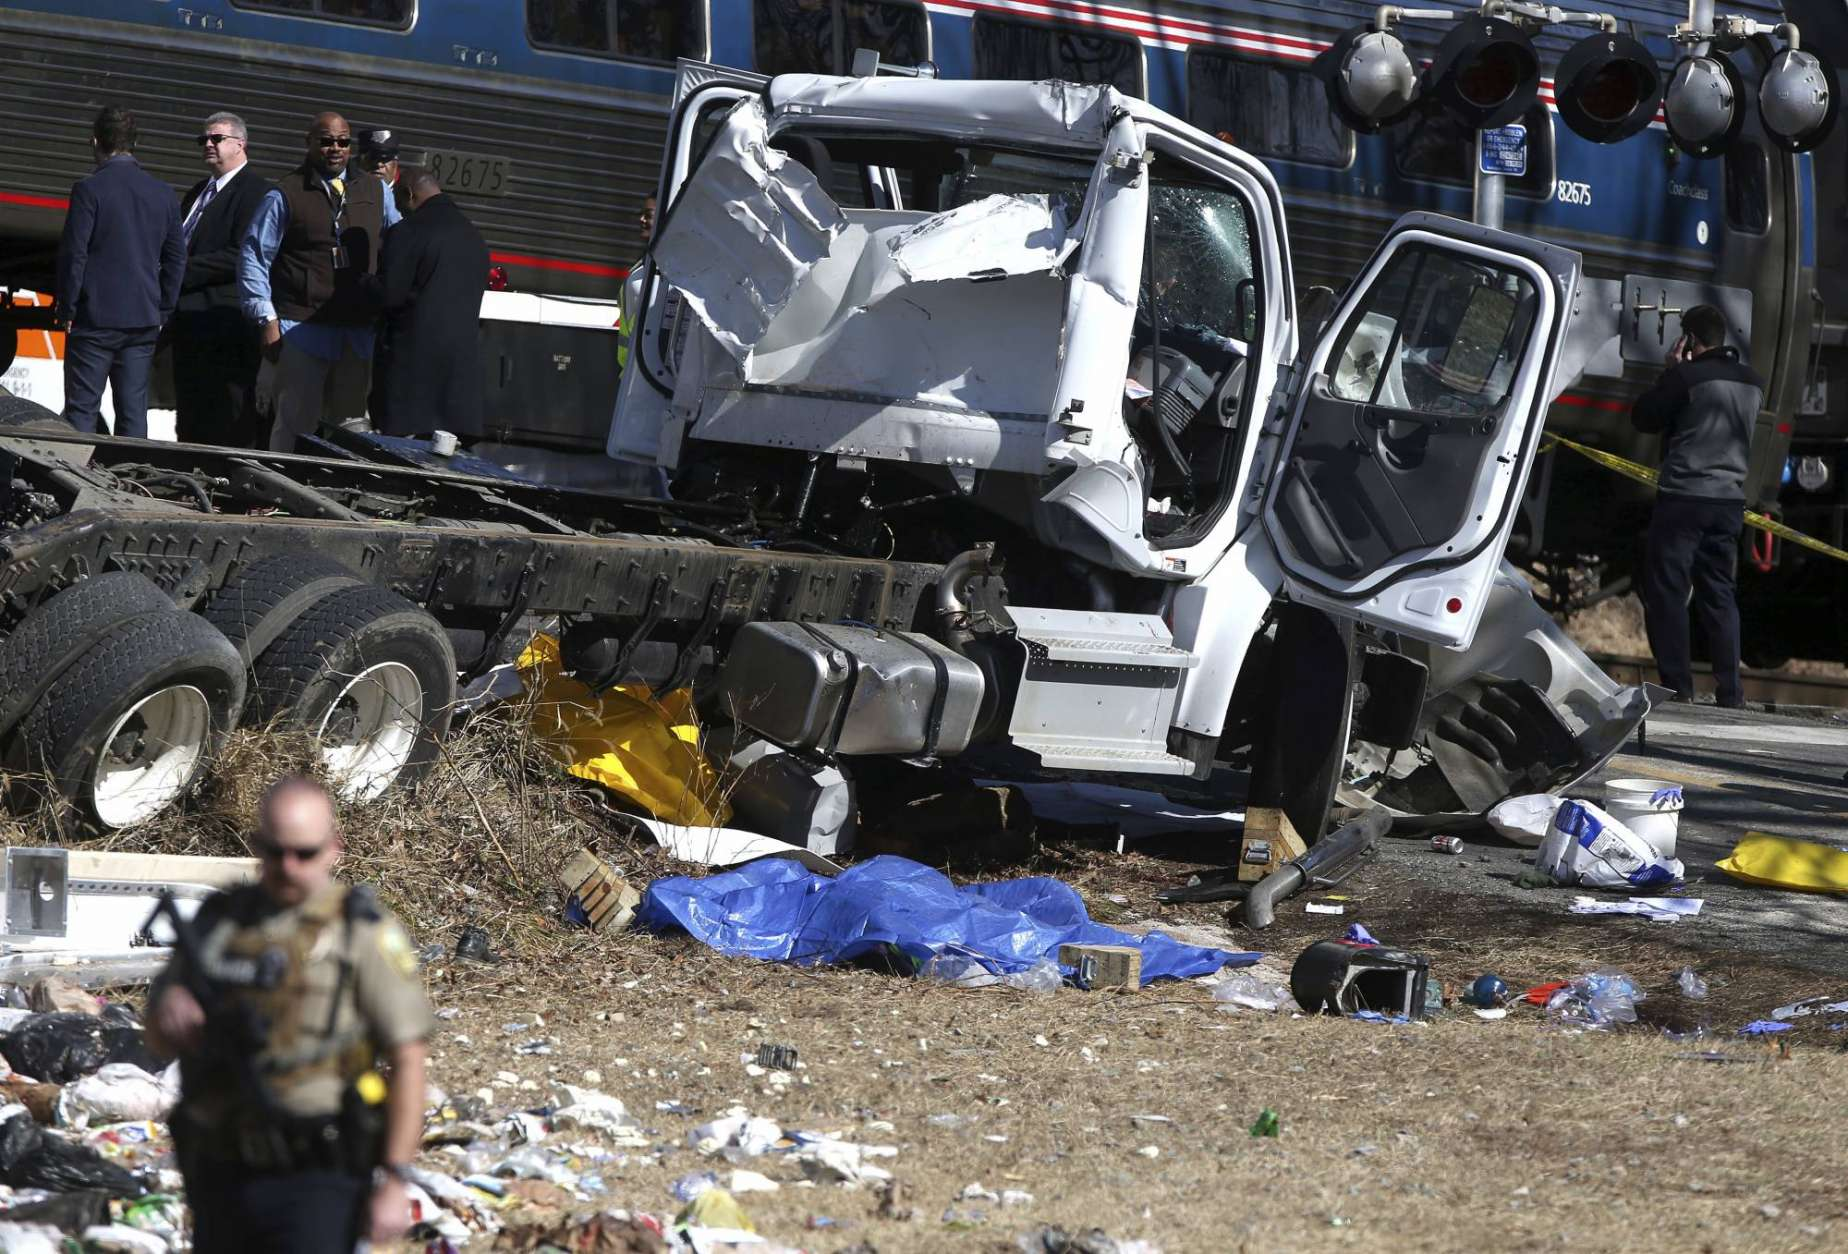 Wreckage is seen near the scene of where an Amtrak train carrying multiple Republican lawmakers crashed into a garbage truck  in Crozet, Va., on Wednesday, Jan. 31, 2018.  A chartered train carrying dozens of GOP lawmakers to a Republican policy retreat in West Virginia struck a garbage truck in a rural Virginia town Wednesday.  (Zack Wajsgras/The Daily Progress via AP)